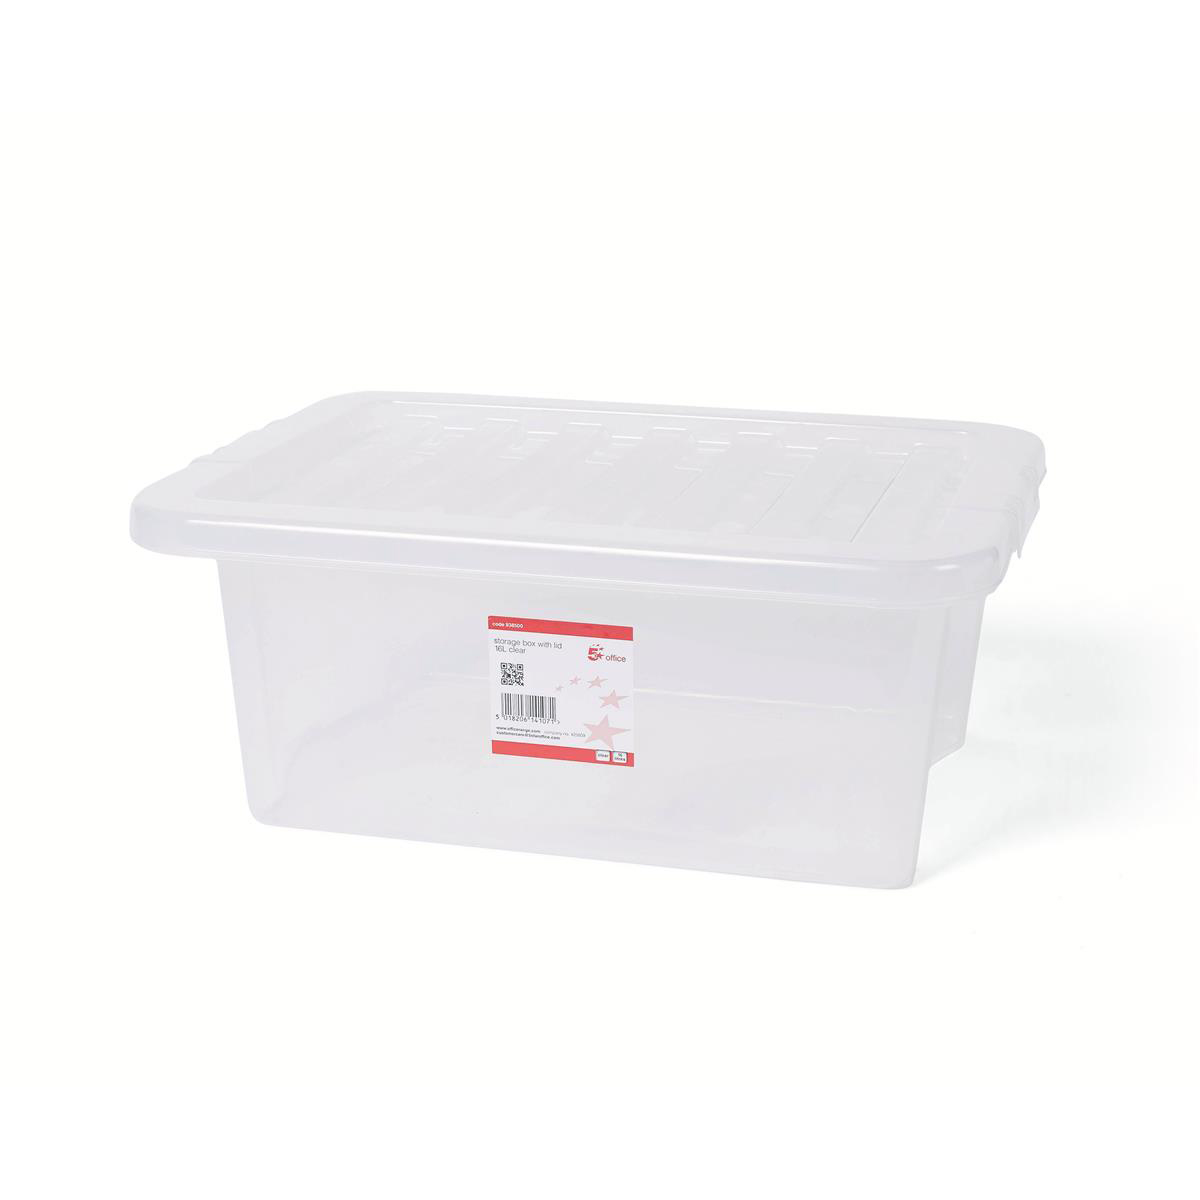 Storage Boxes 5 Star Office Storage Box Plastic with Lid Stackable 16 Litre Clear